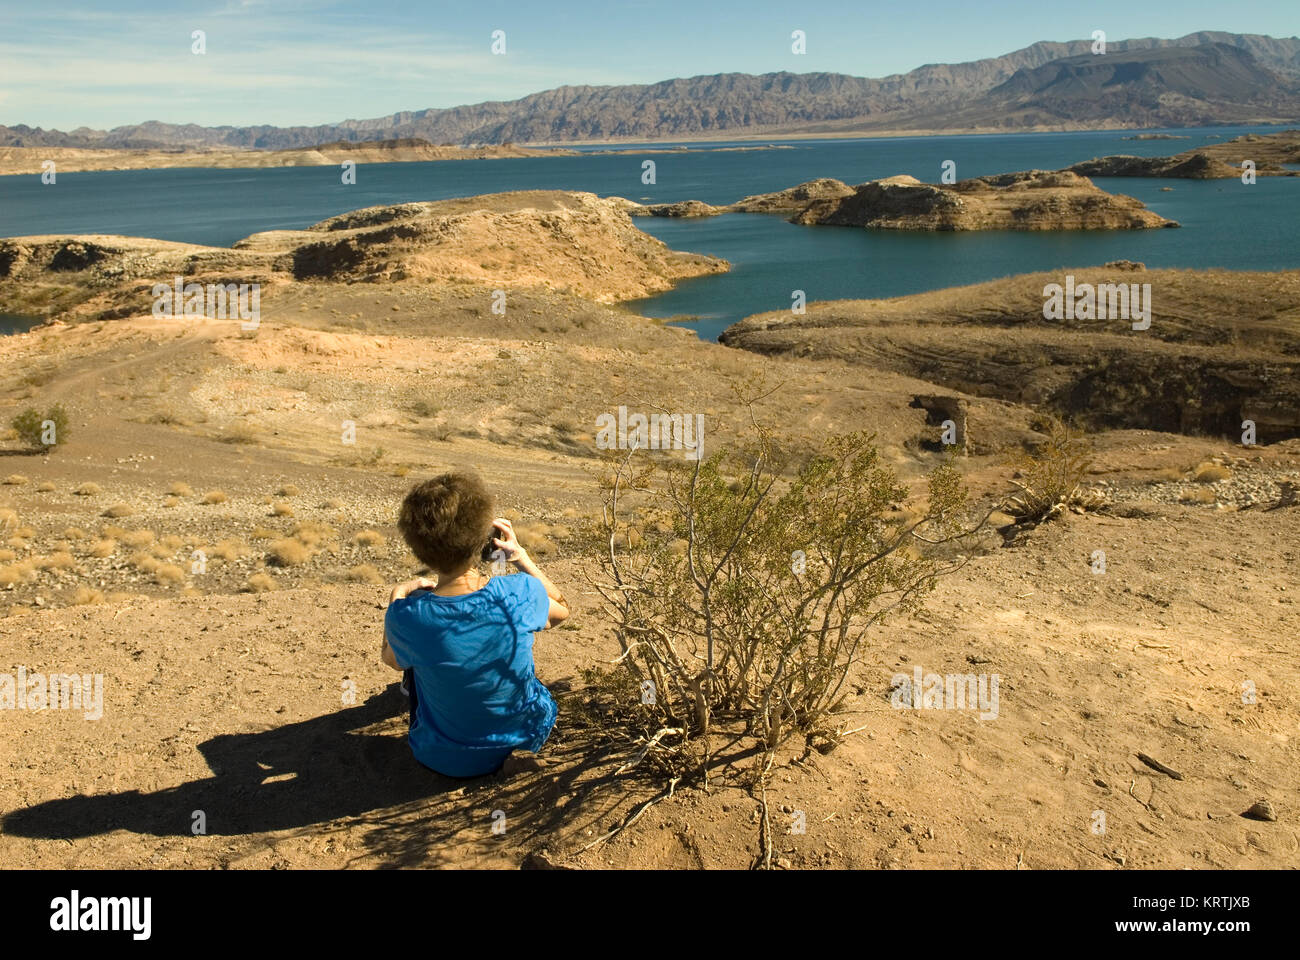 Femme parle sur téléphone cellulaire au Lake Mead National Recreation Area Nevada, USA. Photo Stock